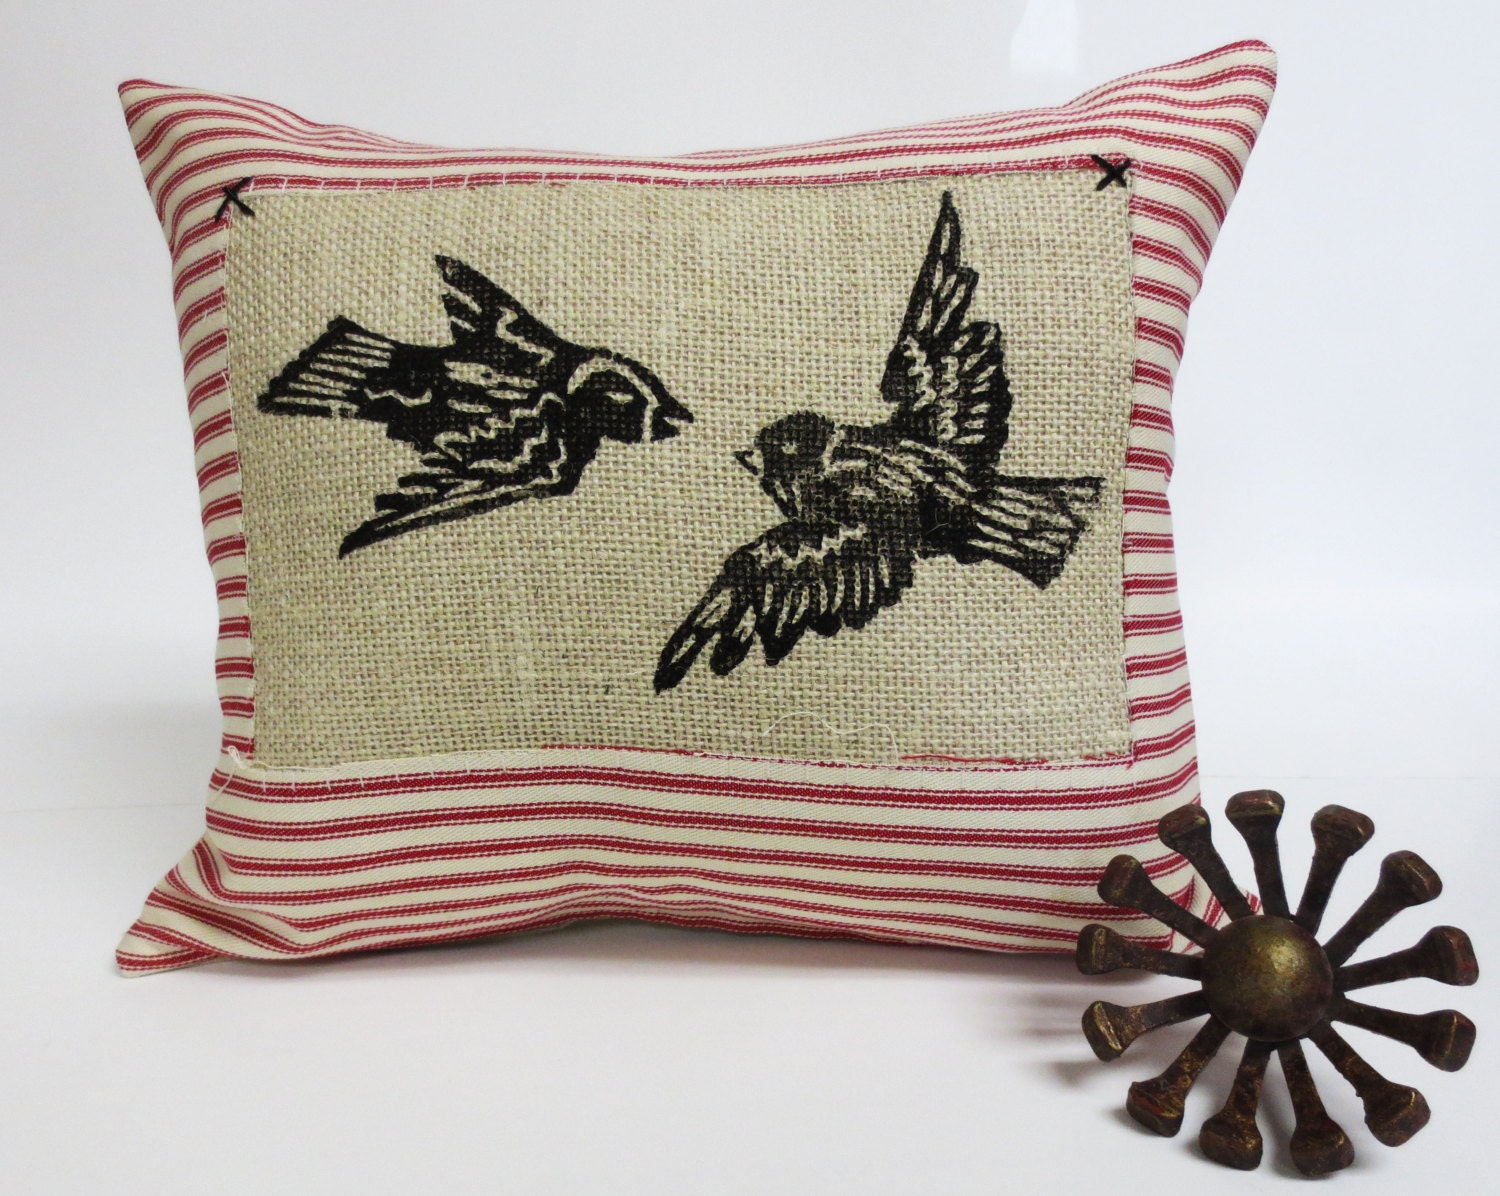 Decorative Throw Pillow Cushion with Flying Birds Block Print